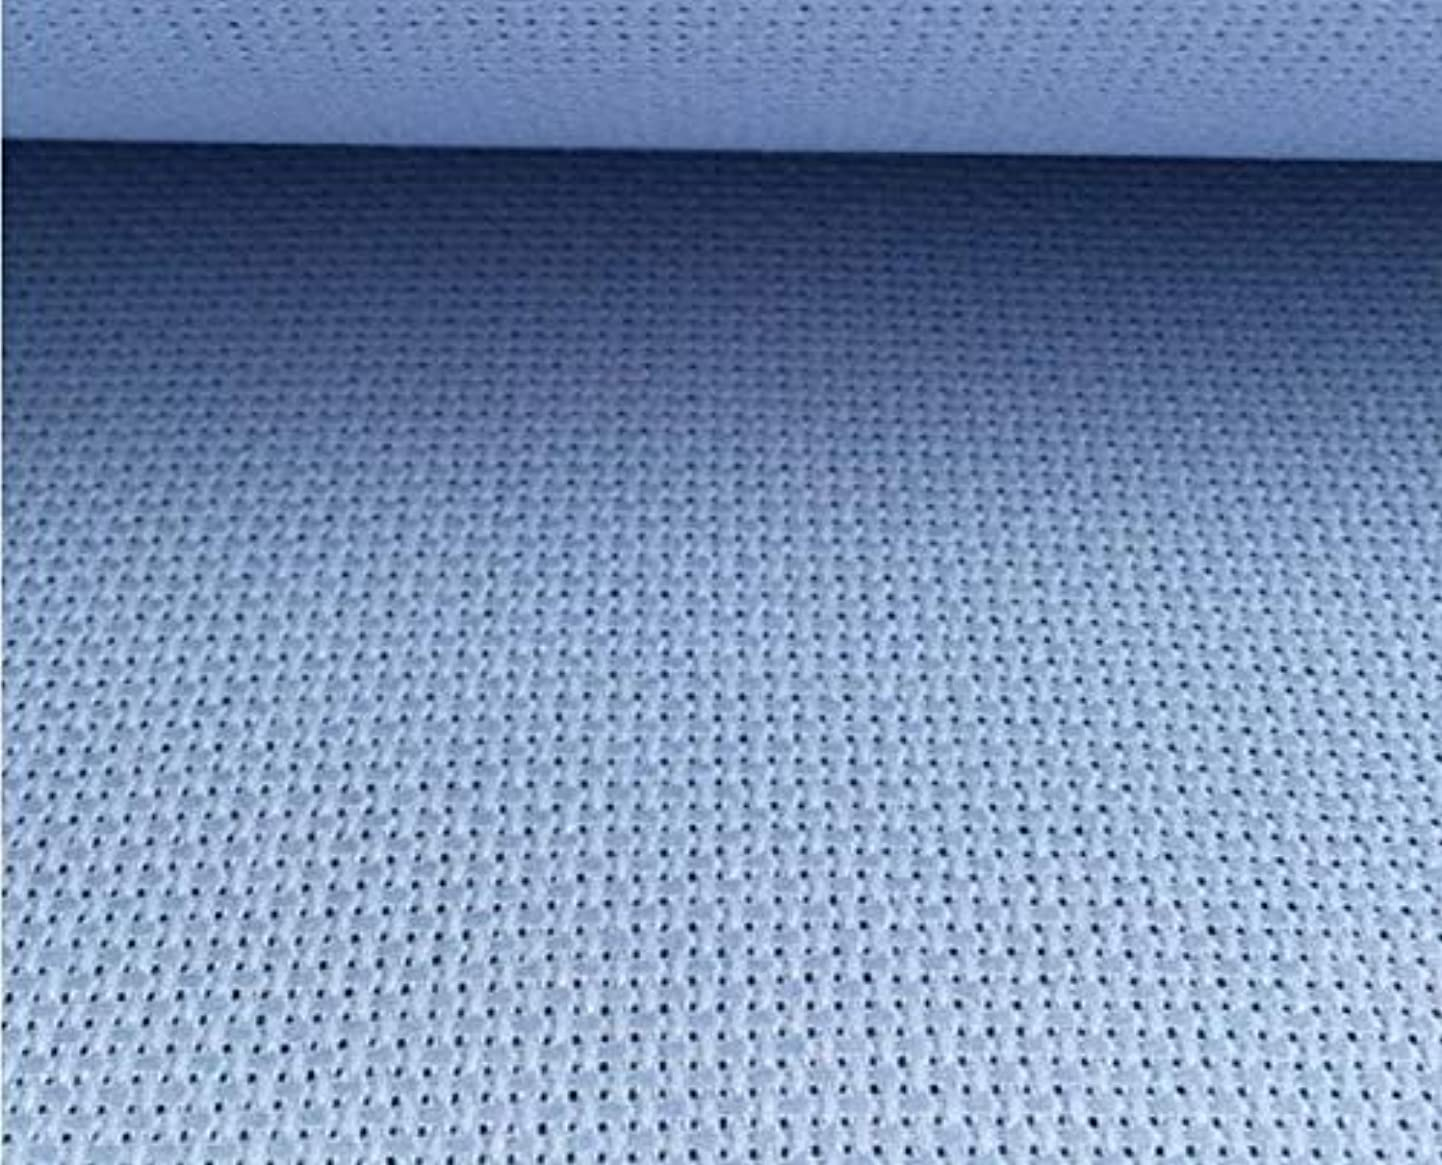 Zamtac 100% Cotton Embroidery Aida Cloth Canvas Fabric Make Any Size - (Color: Navy Blue, Size: 5050cm, Cross Stitch Fabric CT Number: 14CT) dhuqmfdfjeo0